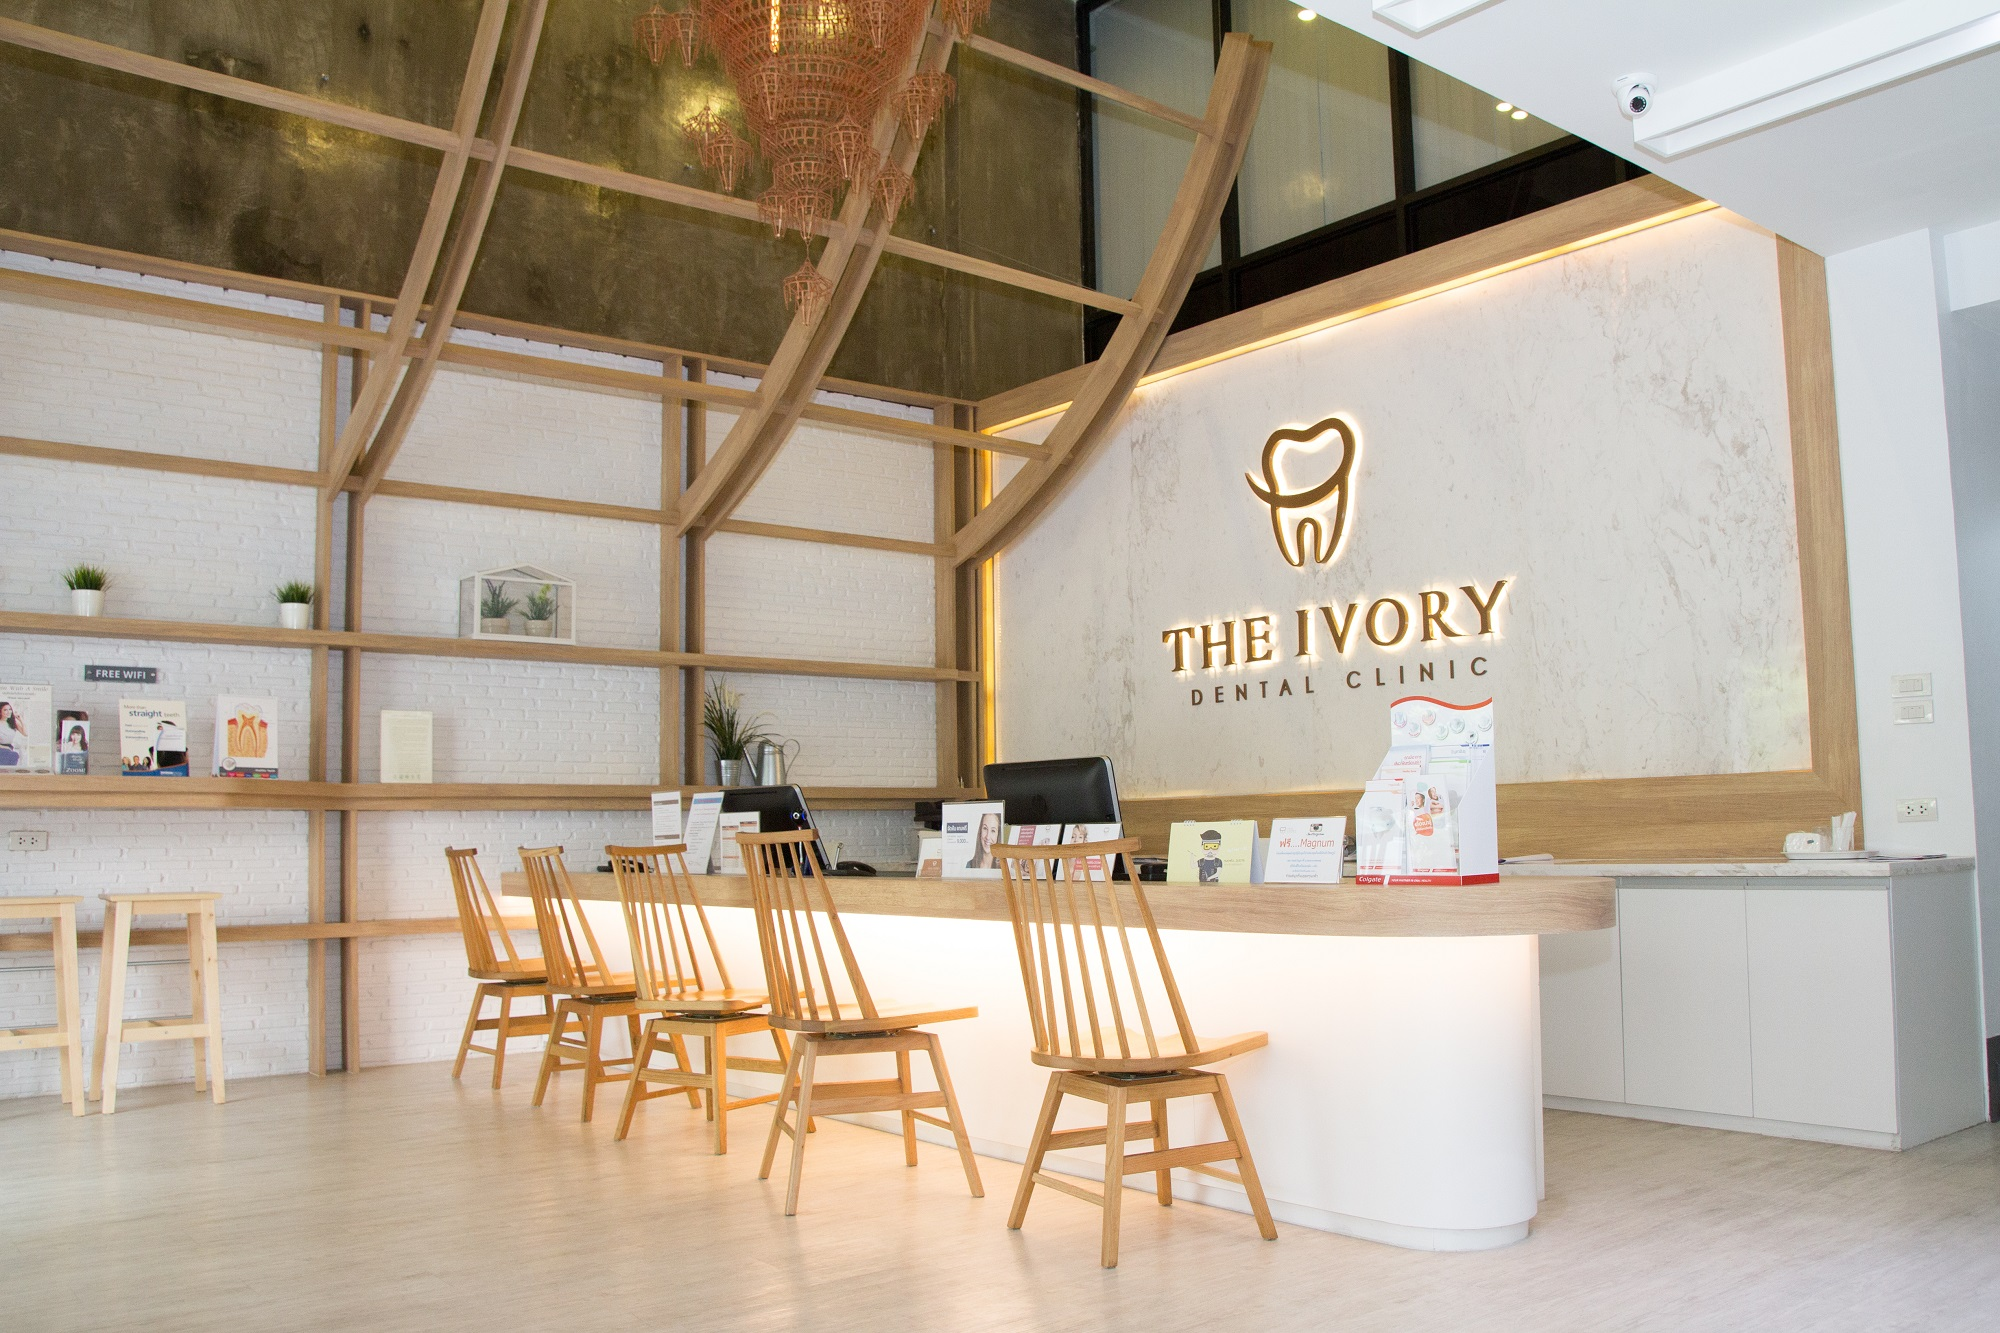 The Ivory Dental Clinic